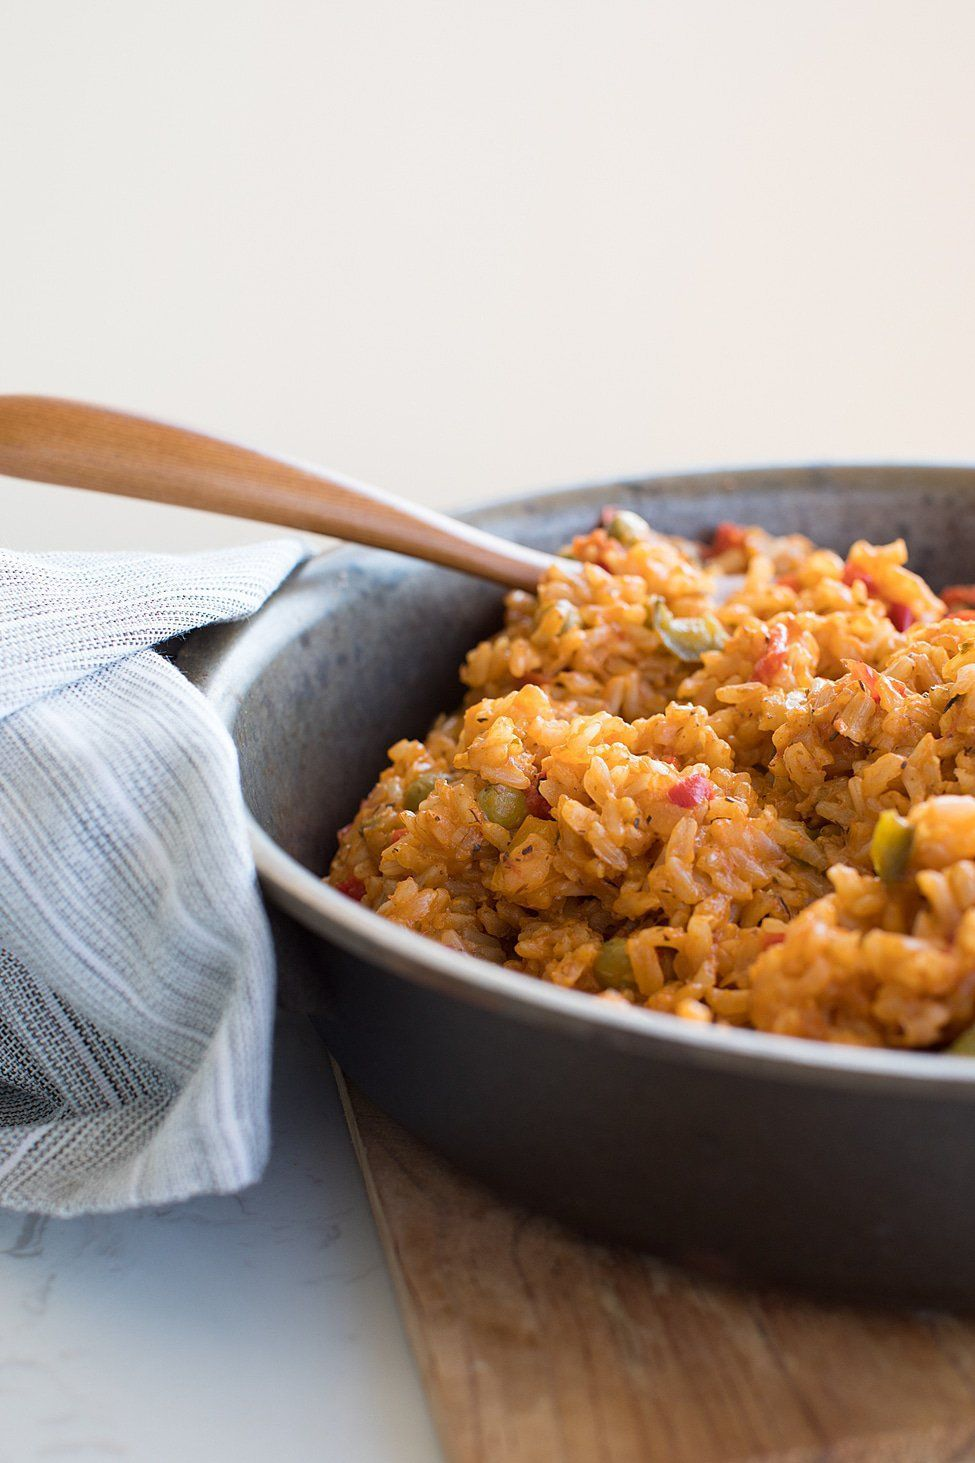 Pin By Veganio On Vegan Mains In 2019 Spanish Rice Food